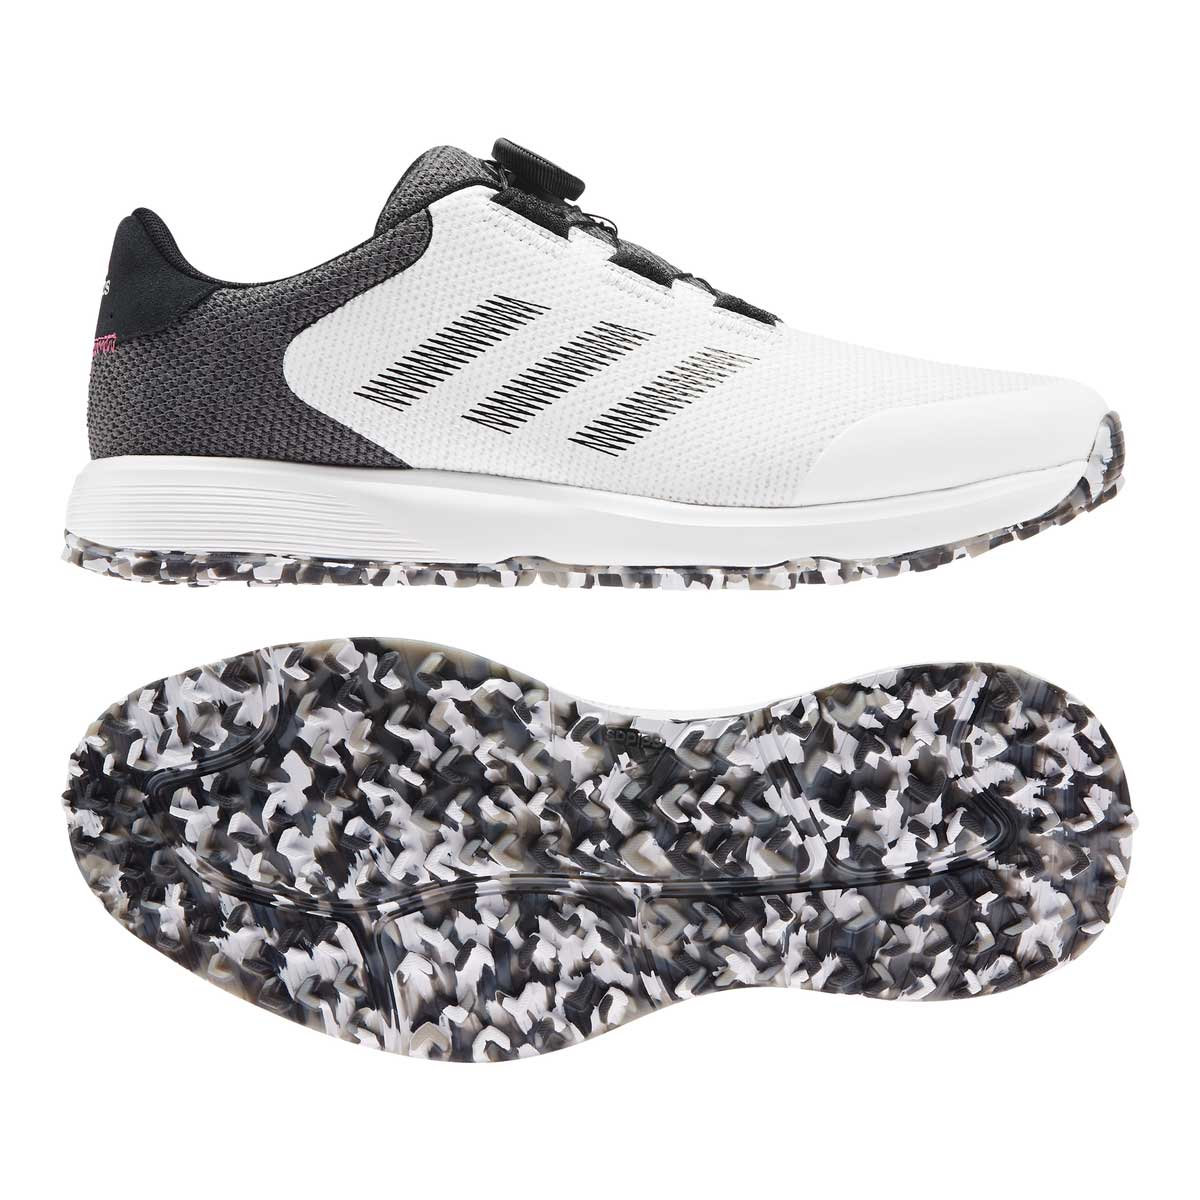 Adidas Men's S2G BOA White/Black Golf Shoe